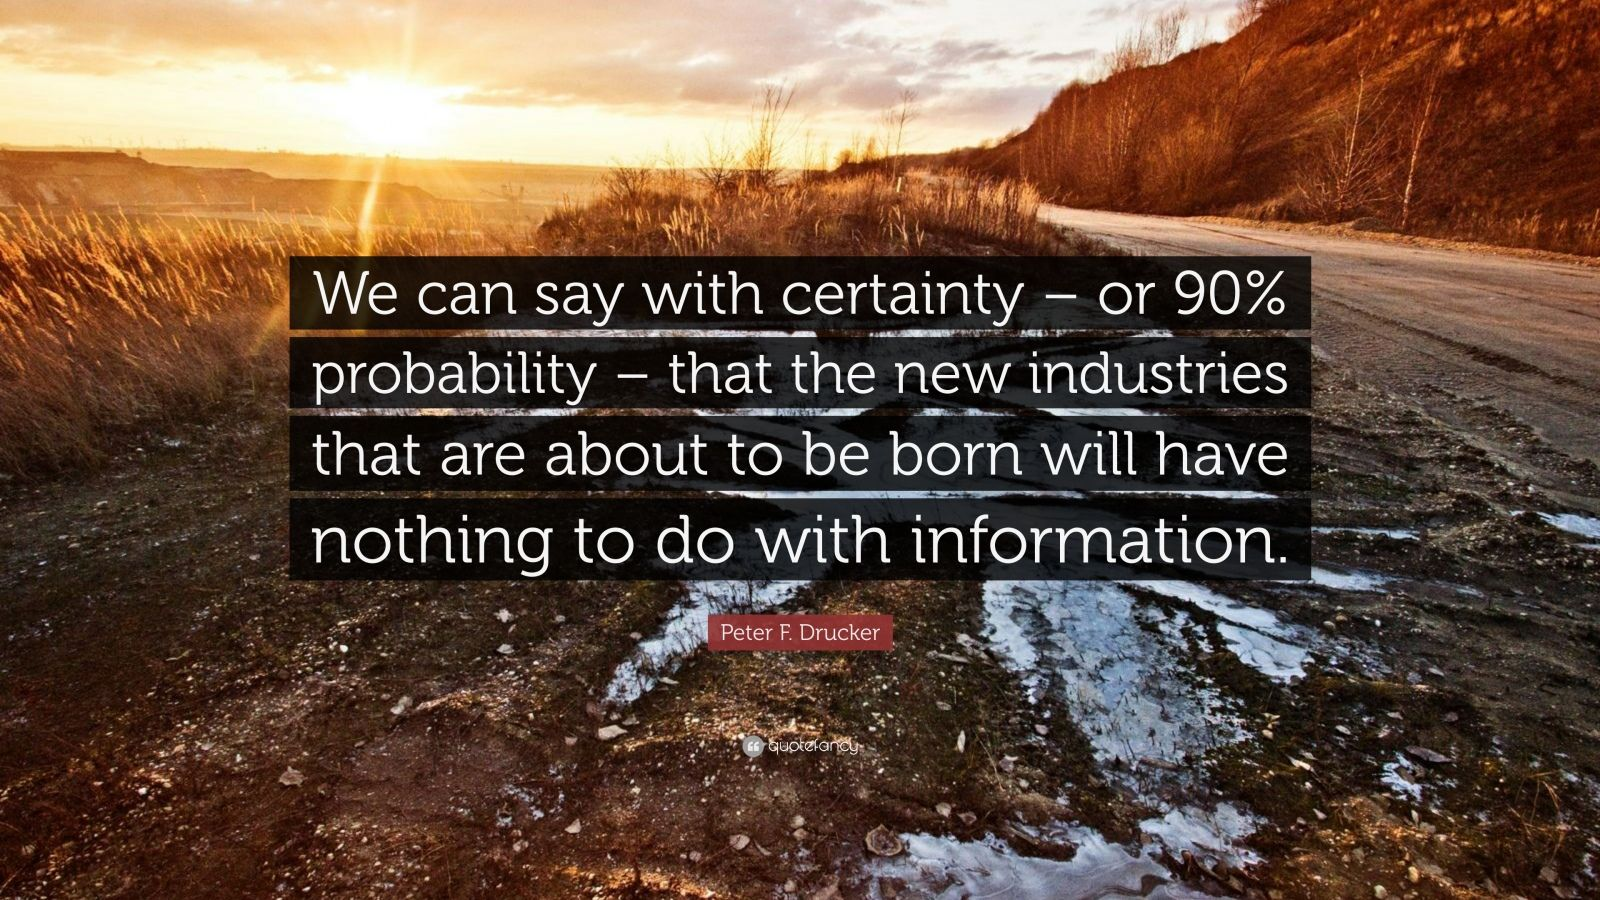 """Peter F. Drucker Quote: """"We can say with certainty – or 90% probability – that the new industries that are about to be born will have nothing to do with information."""""""